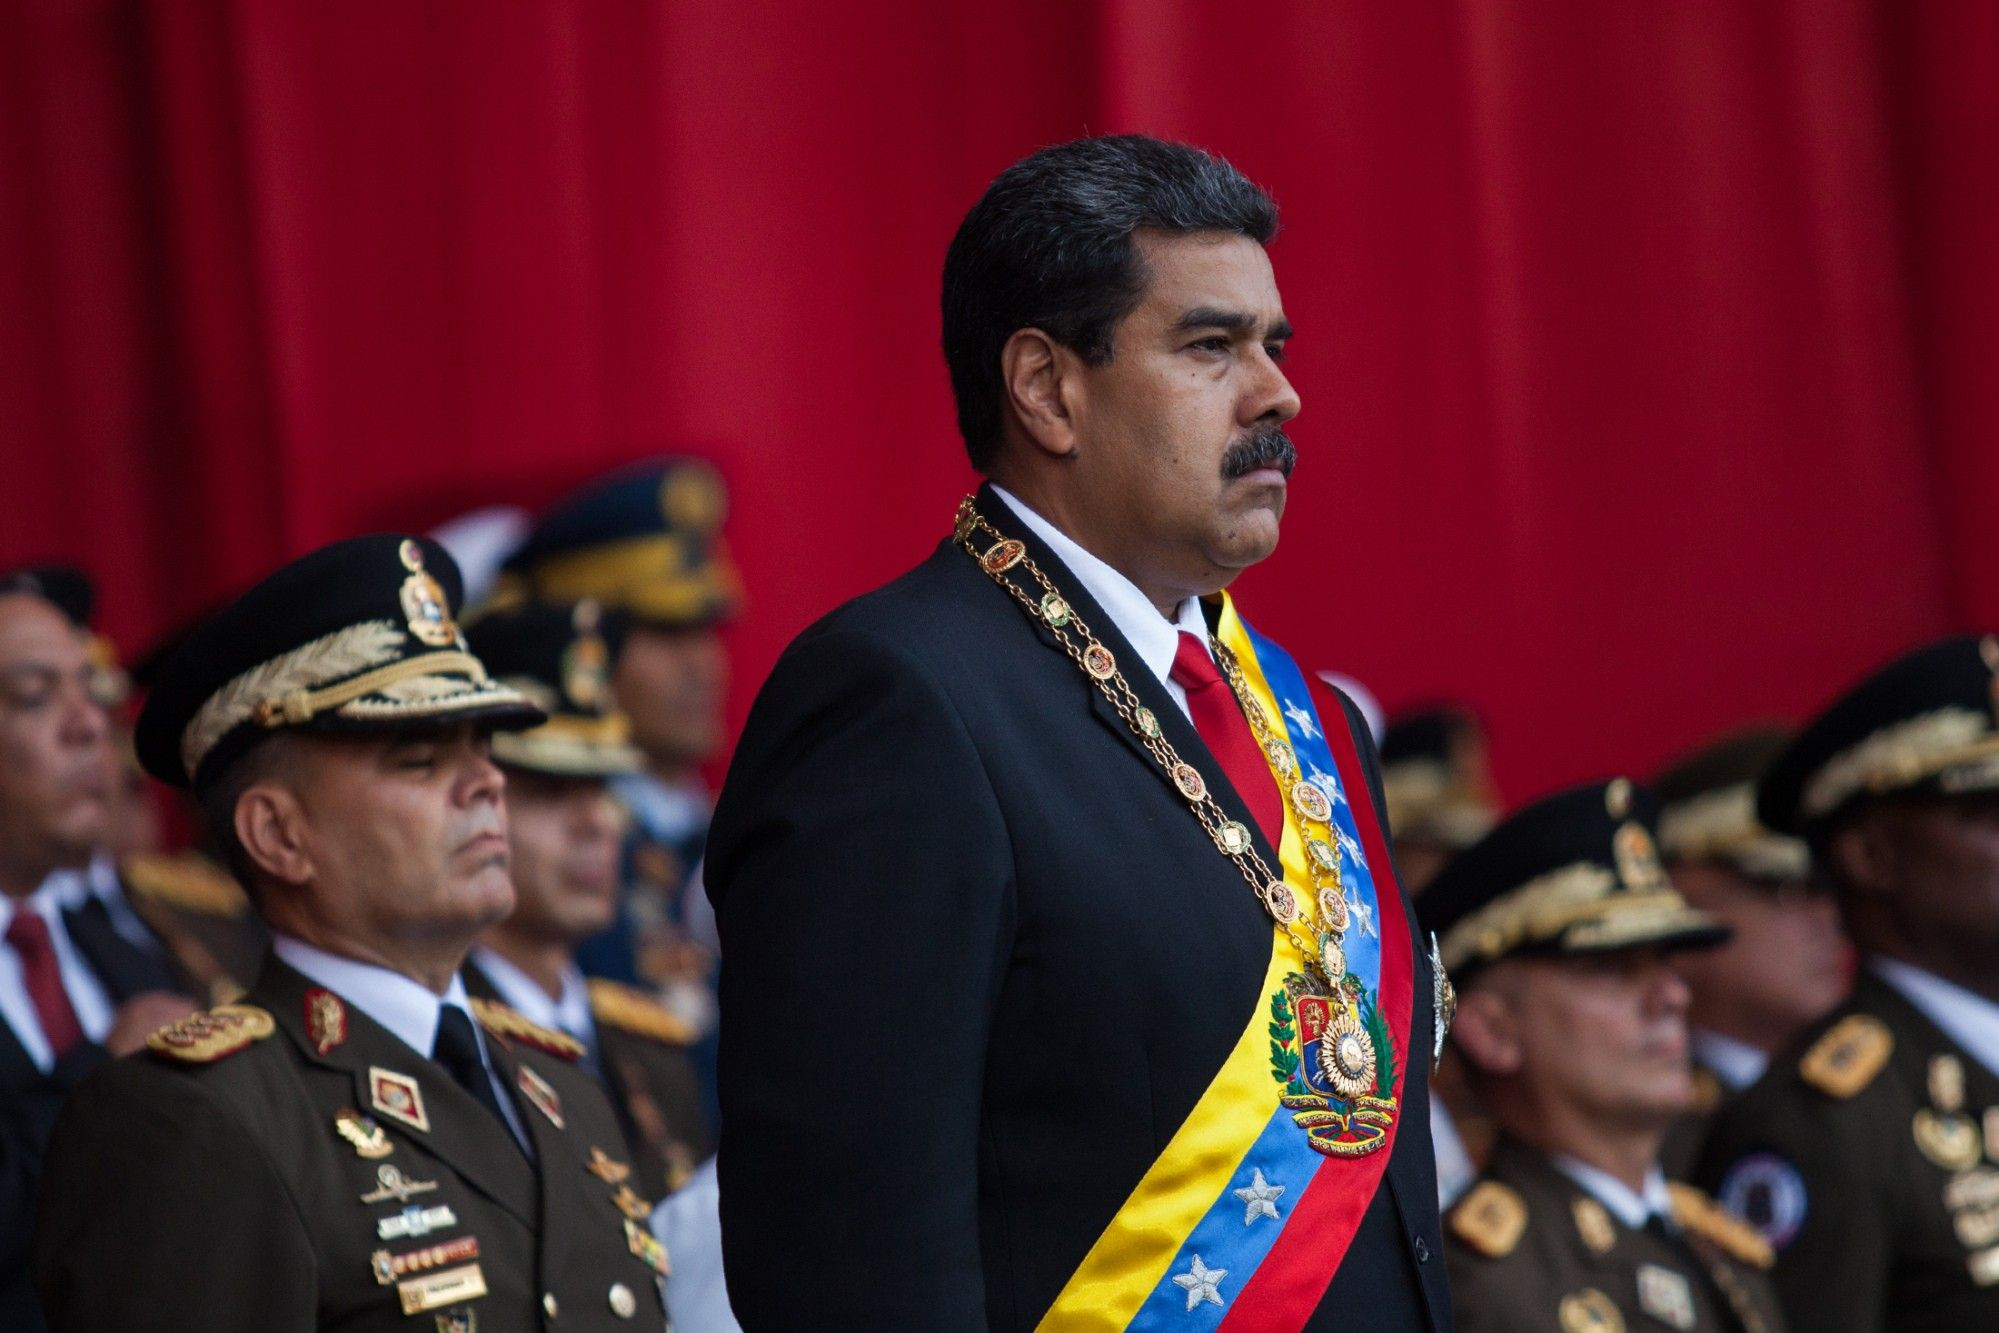 Trump Imposes New Curbs on Venezuela to Force Maduro Out